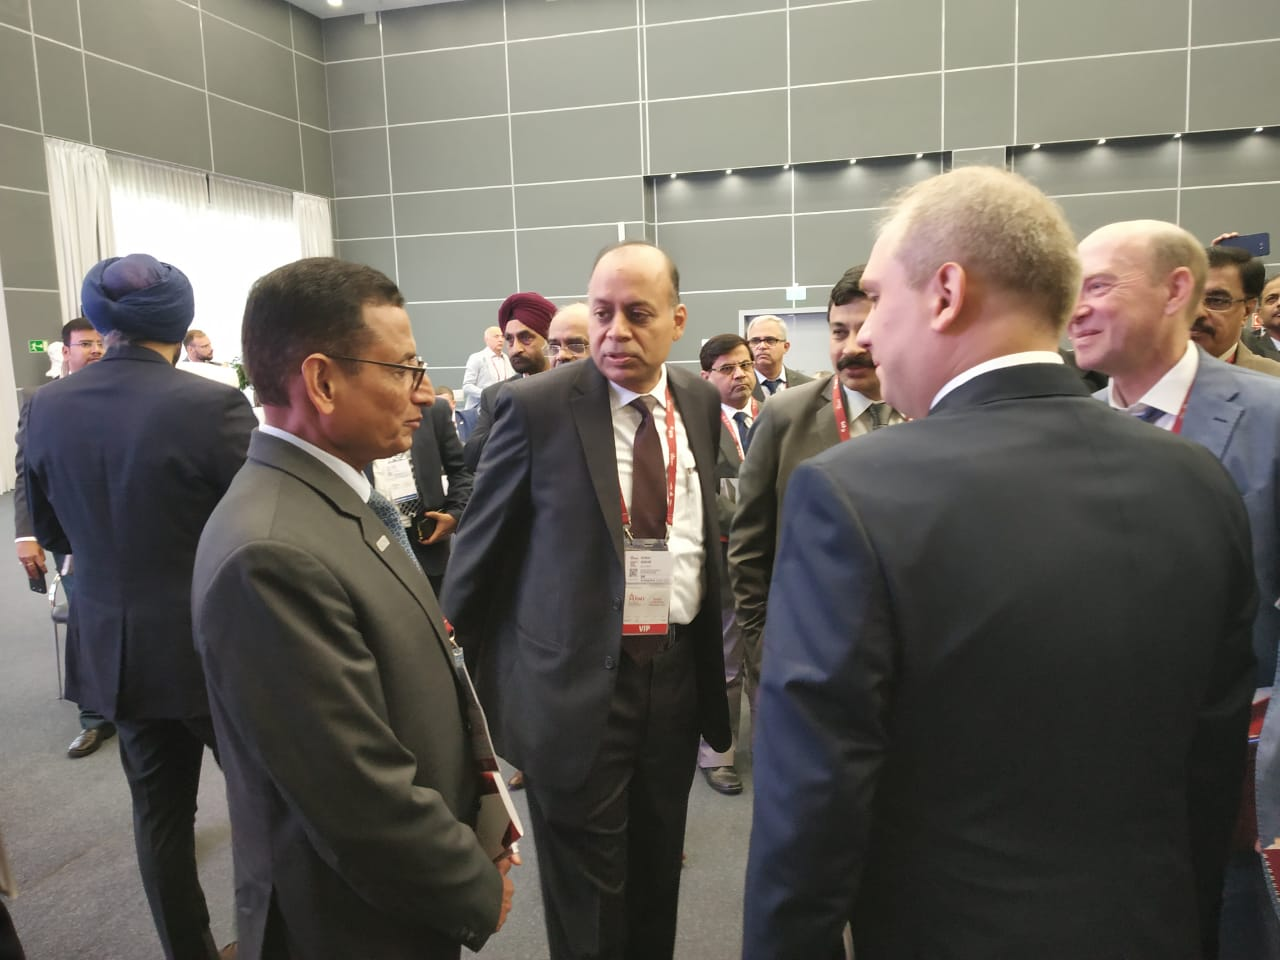 DG SIDM with Secretary (DP) and members of the Russian delegation at the International Military Technical Forum ARMY 2018, Moscow